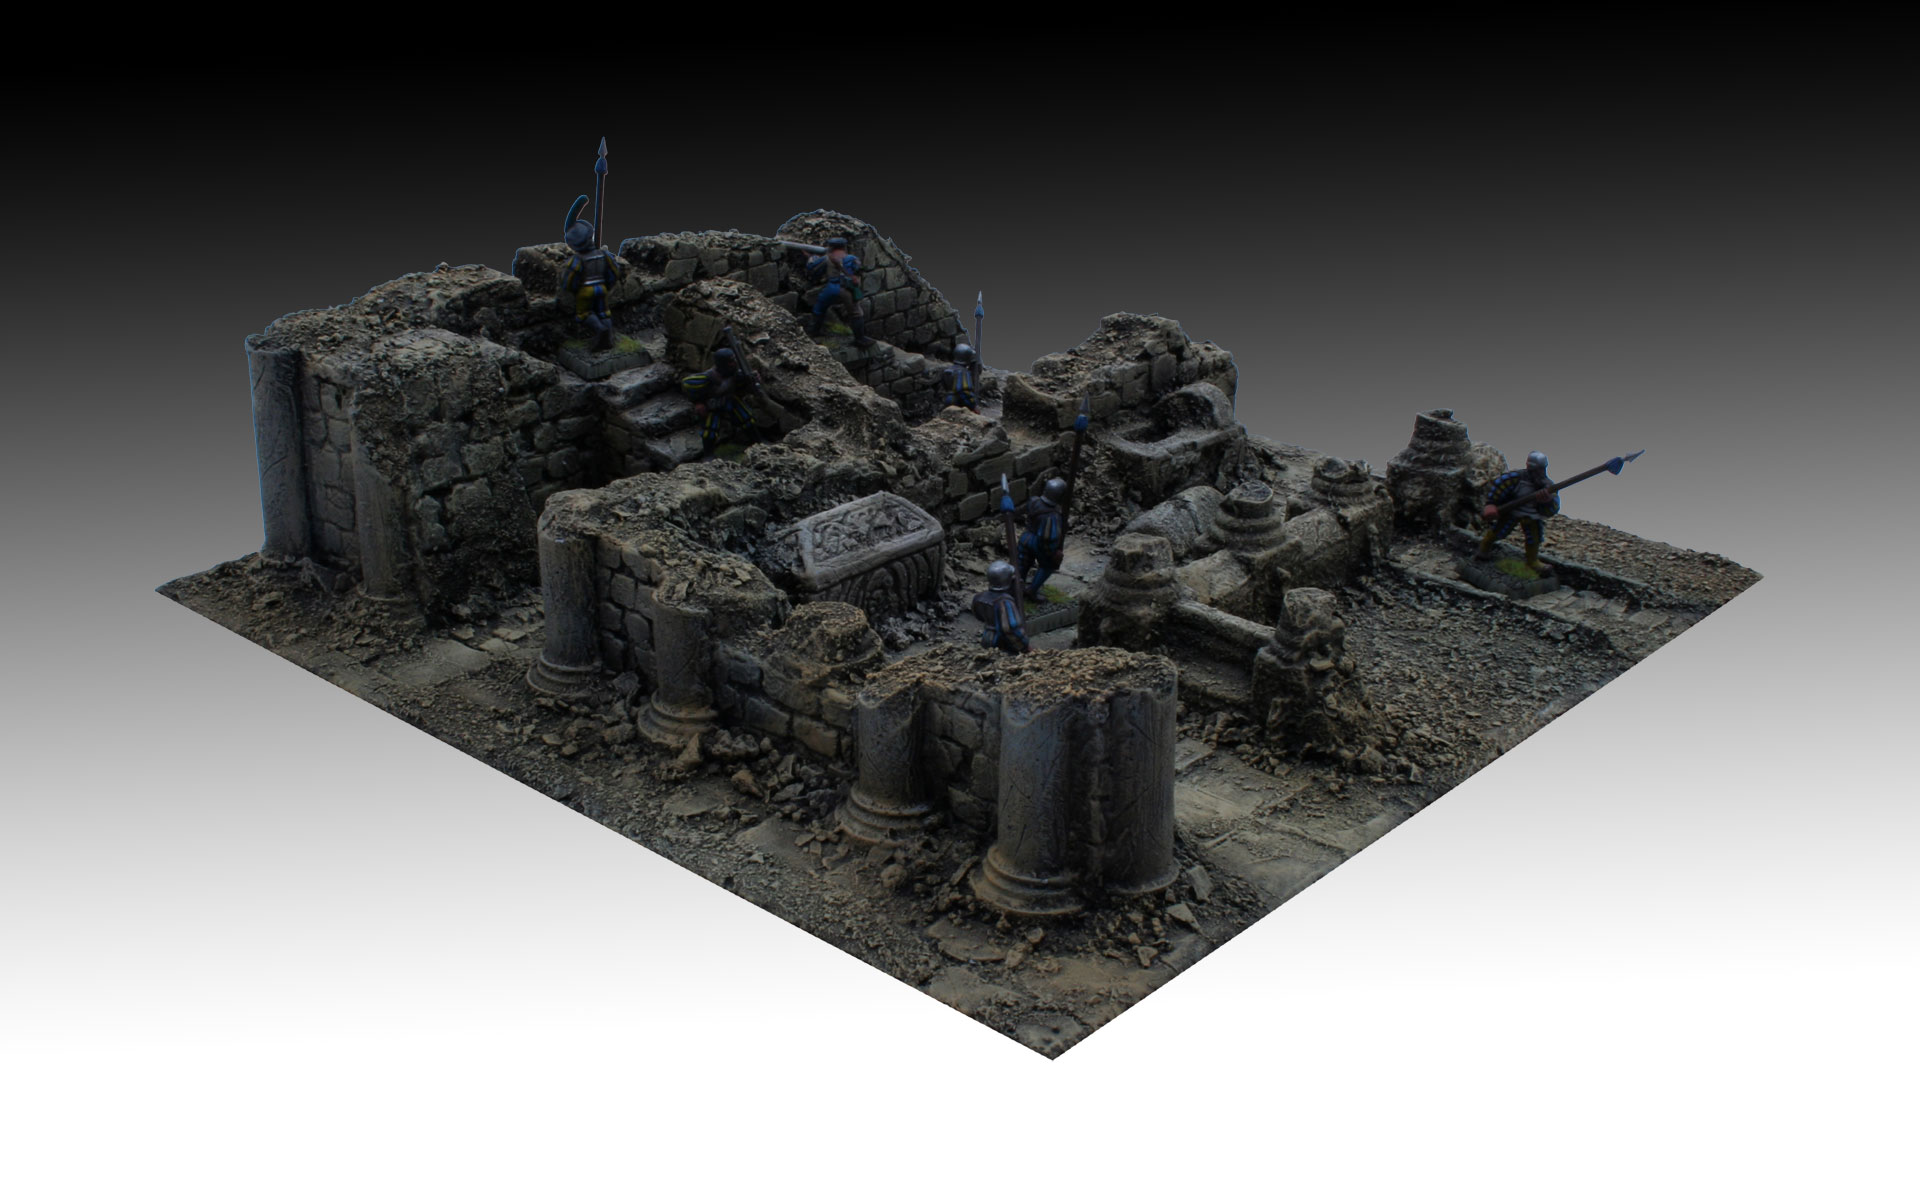 3D Bases - Modular Terrain: by MHW - 3D Bases production under way